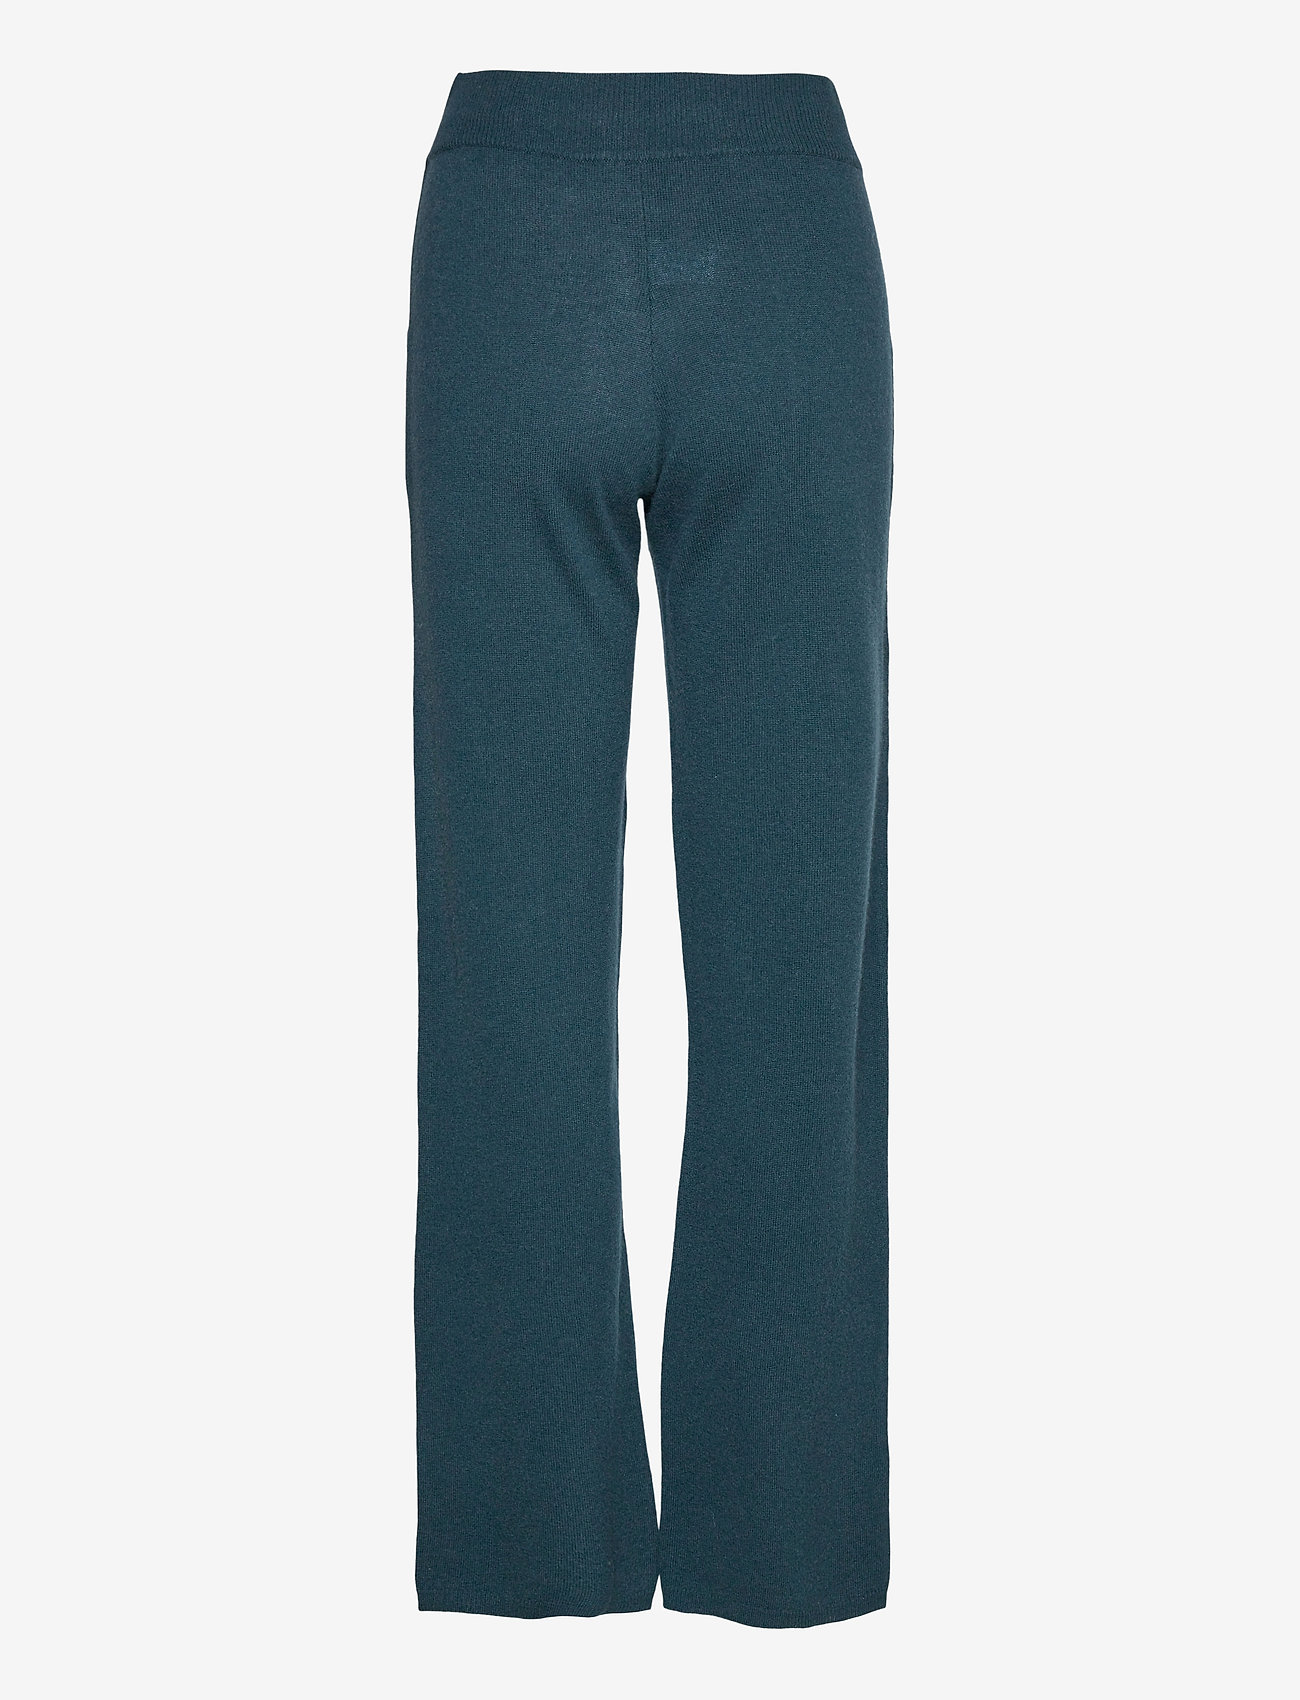 Andiata - Christie knit joggers - kleidung - teal green - 2